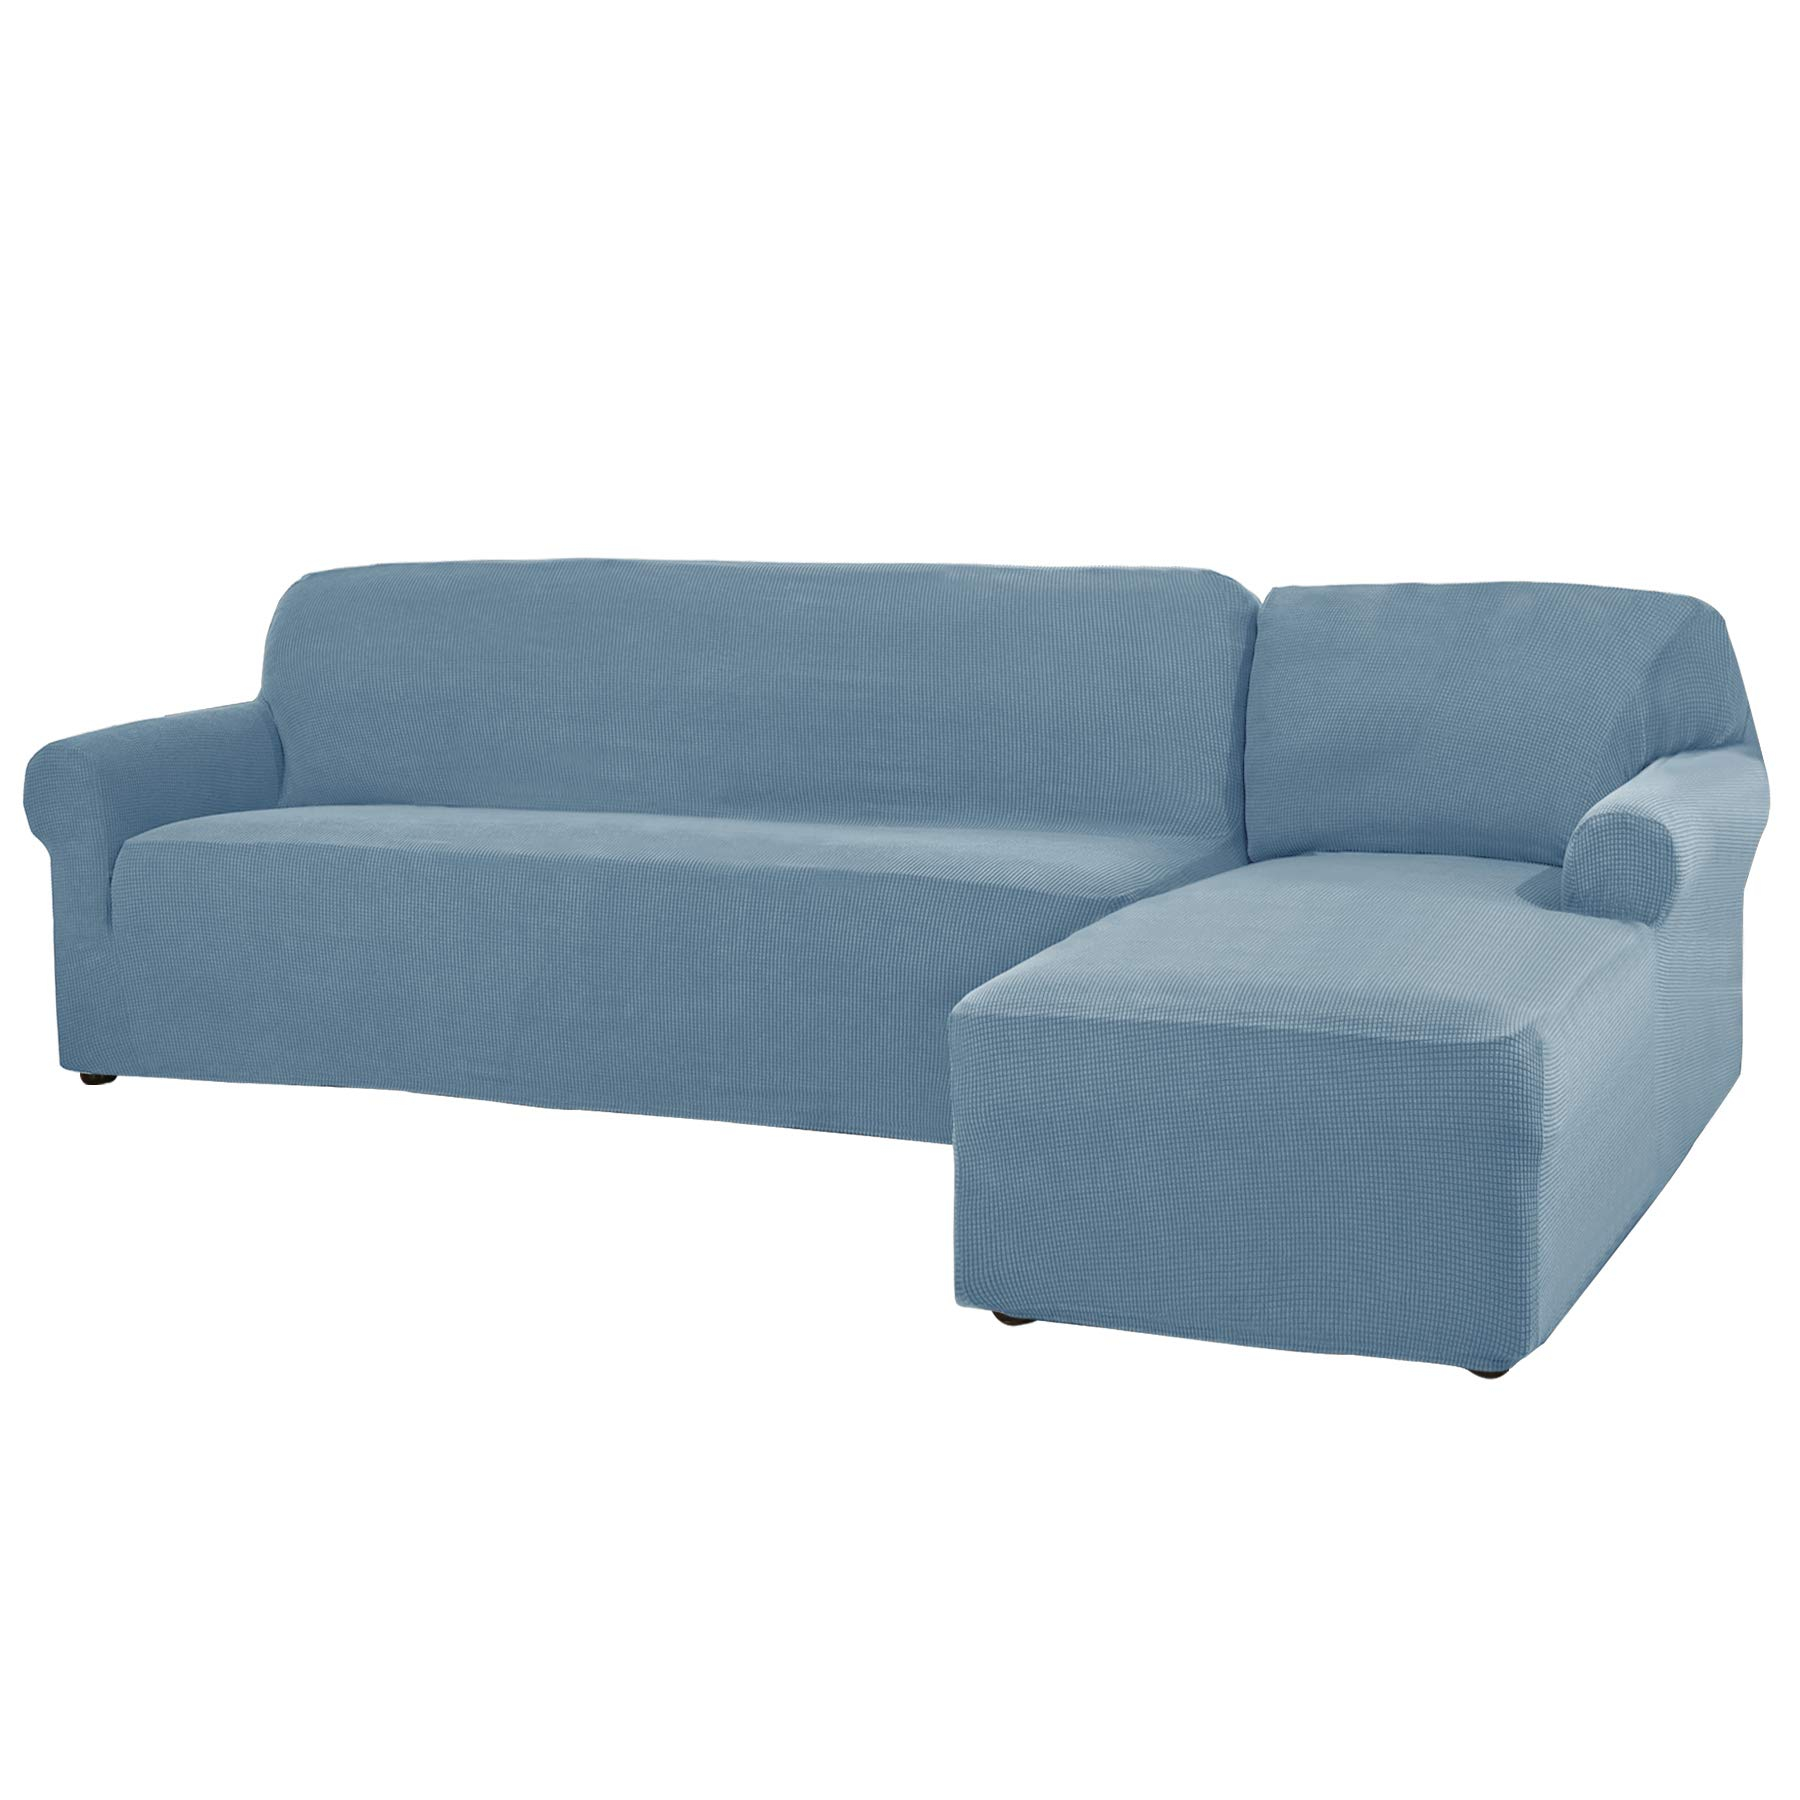 CHUN YI 2 Pieces L-Shaped 3 Seats Jacquard Polyester Stretch Fabric Sectional Sofa Slipcovers Dust-Proof L Shape Corner Sofa Cover Set for Living Room (Right Chaise(3 Seats), Smoky Blue) by CHUN YI